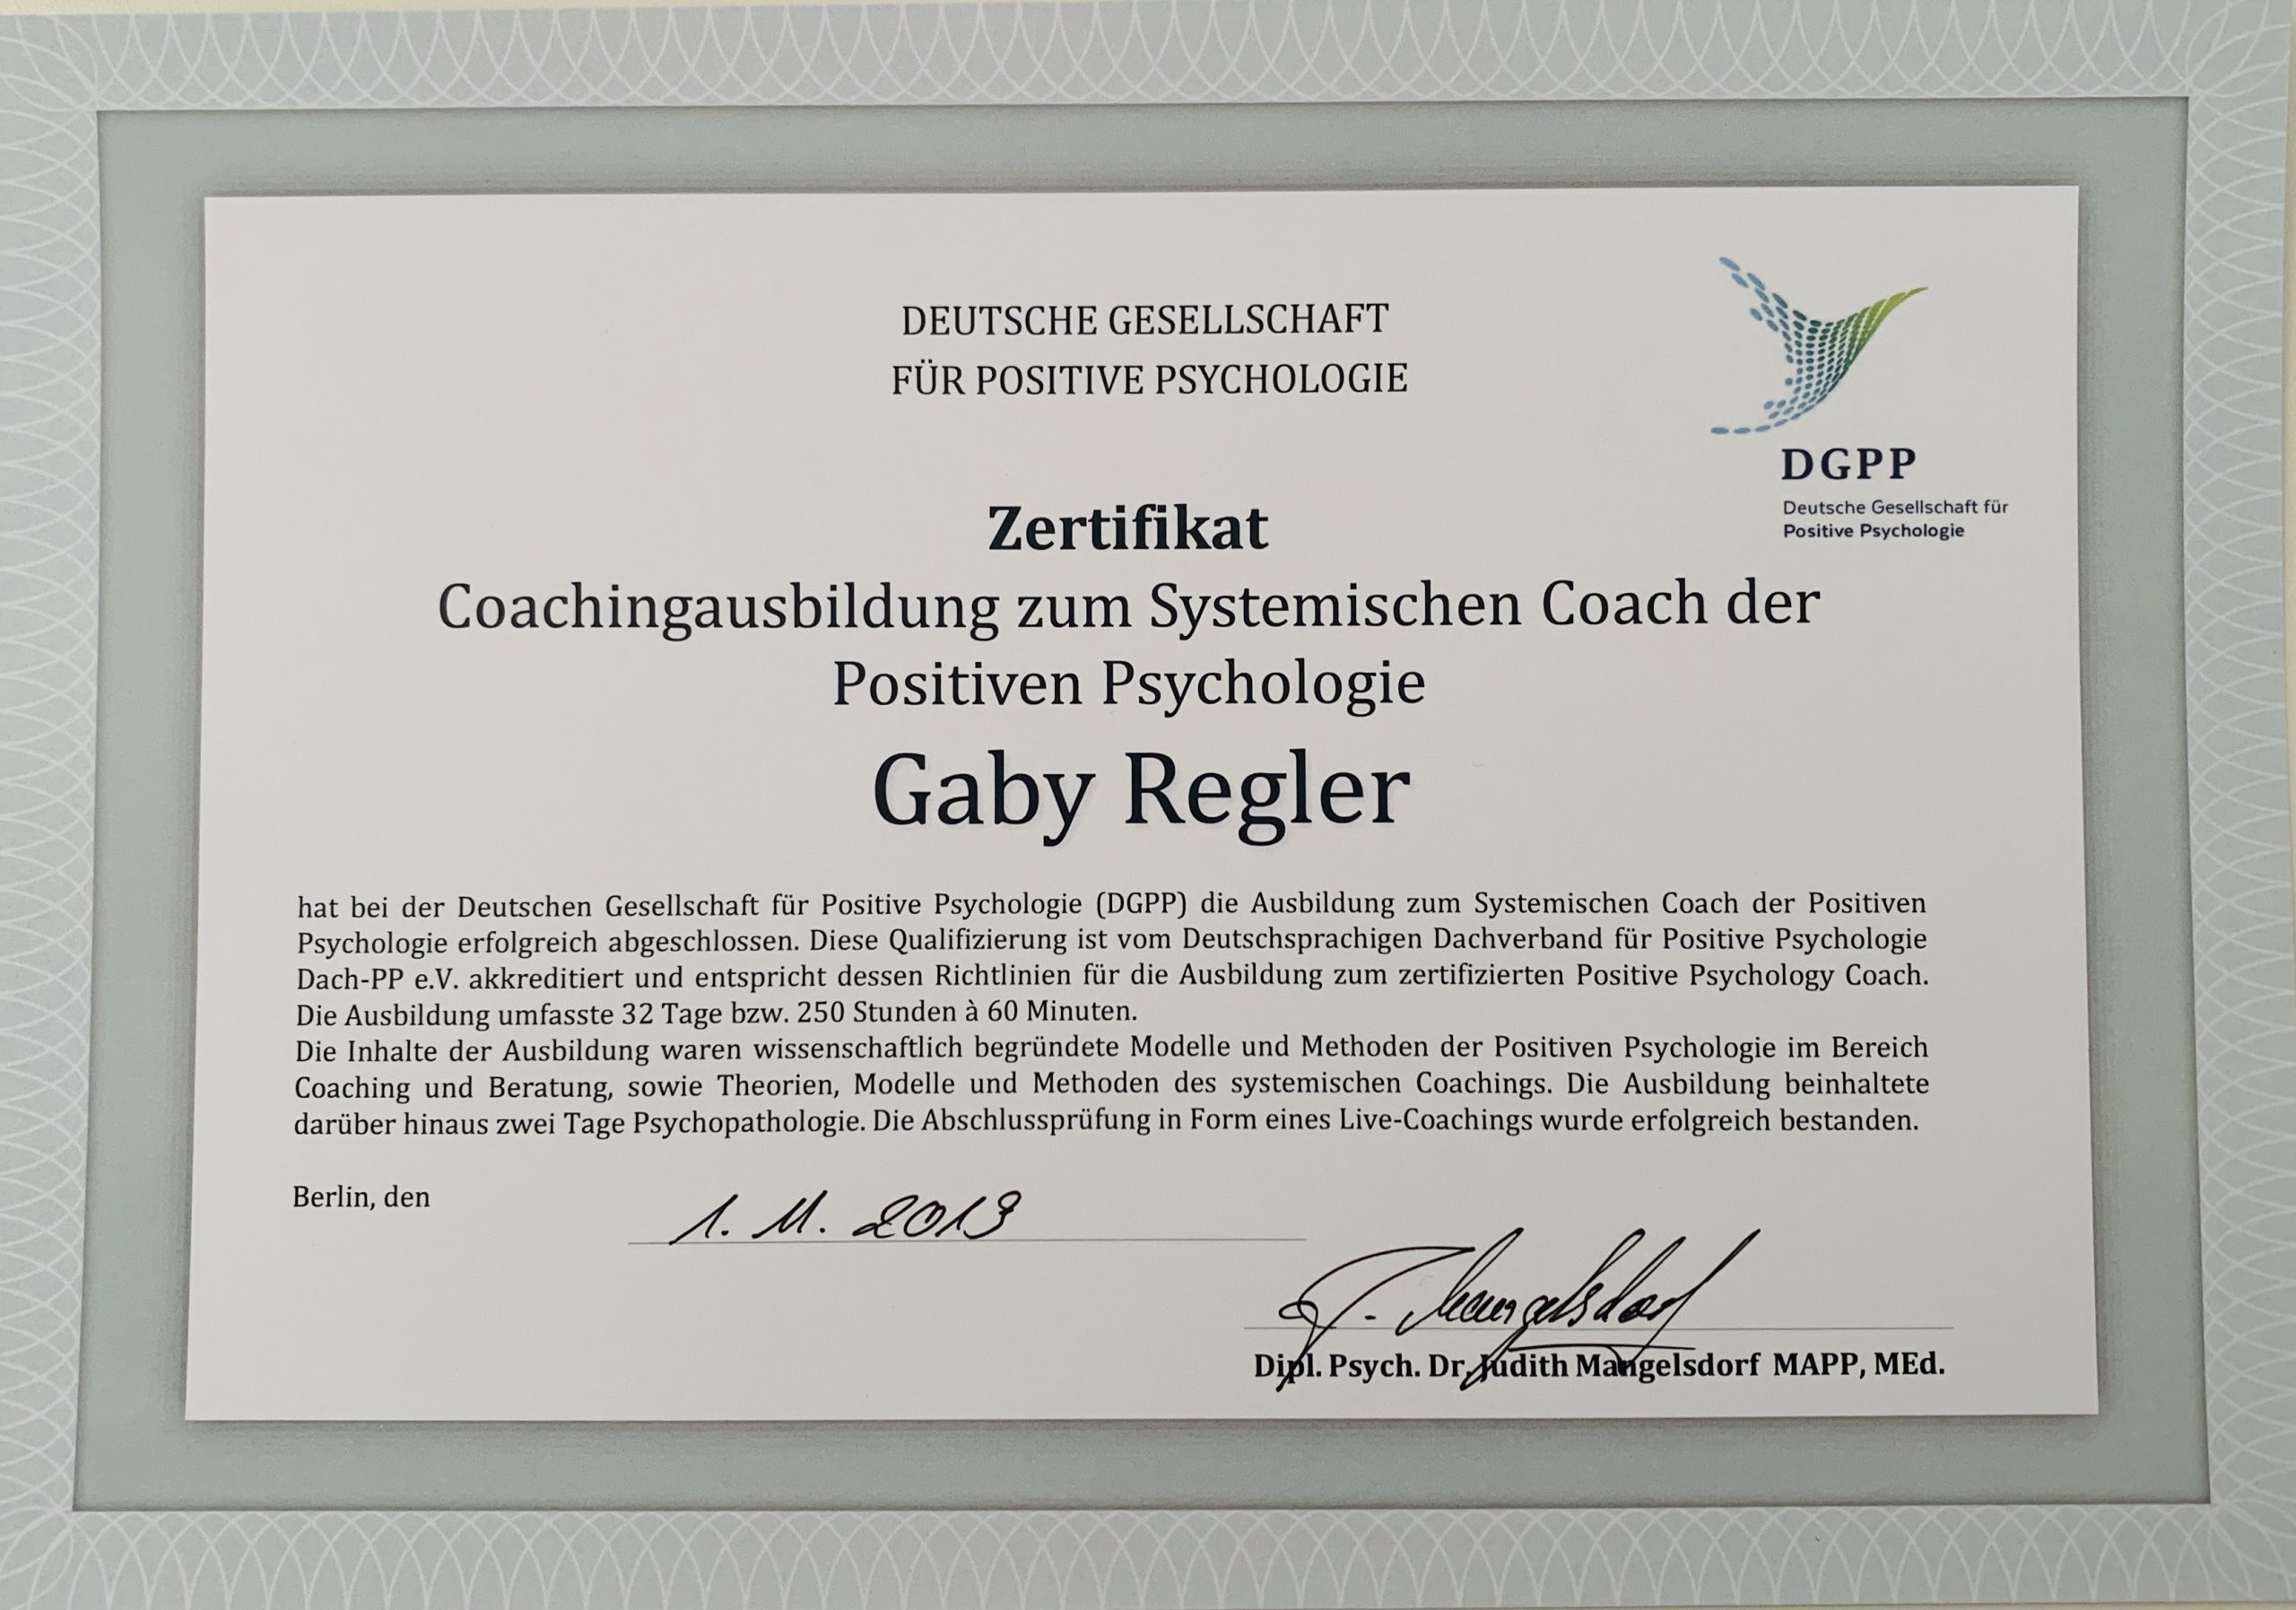 Coach der Positiven Psychologie, Systemischer Coach der Positiven Psychologie